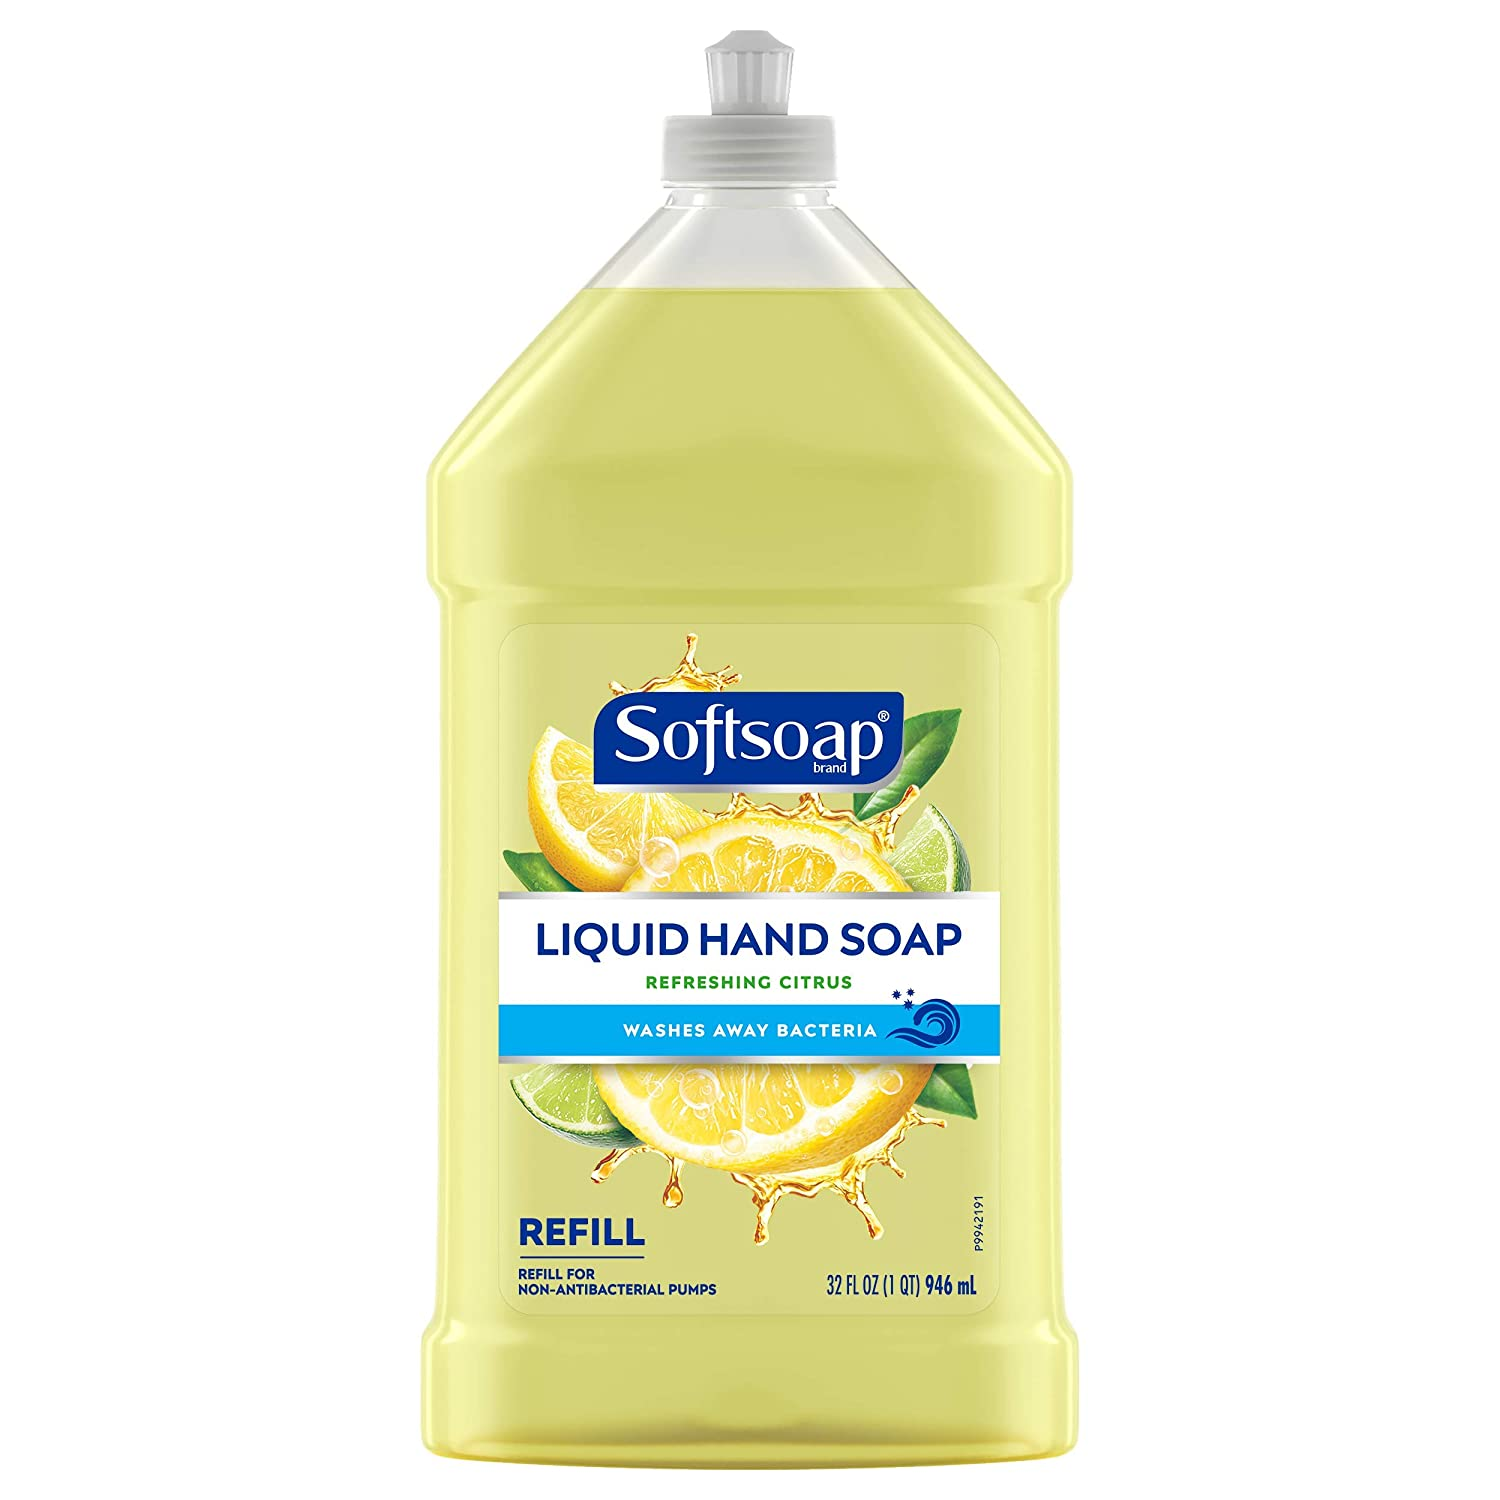 Softsoap Liquid Hand Soap Refill, Refreshing Citrus with Lemon Scent - 32 Fluid Ounce: Beauty